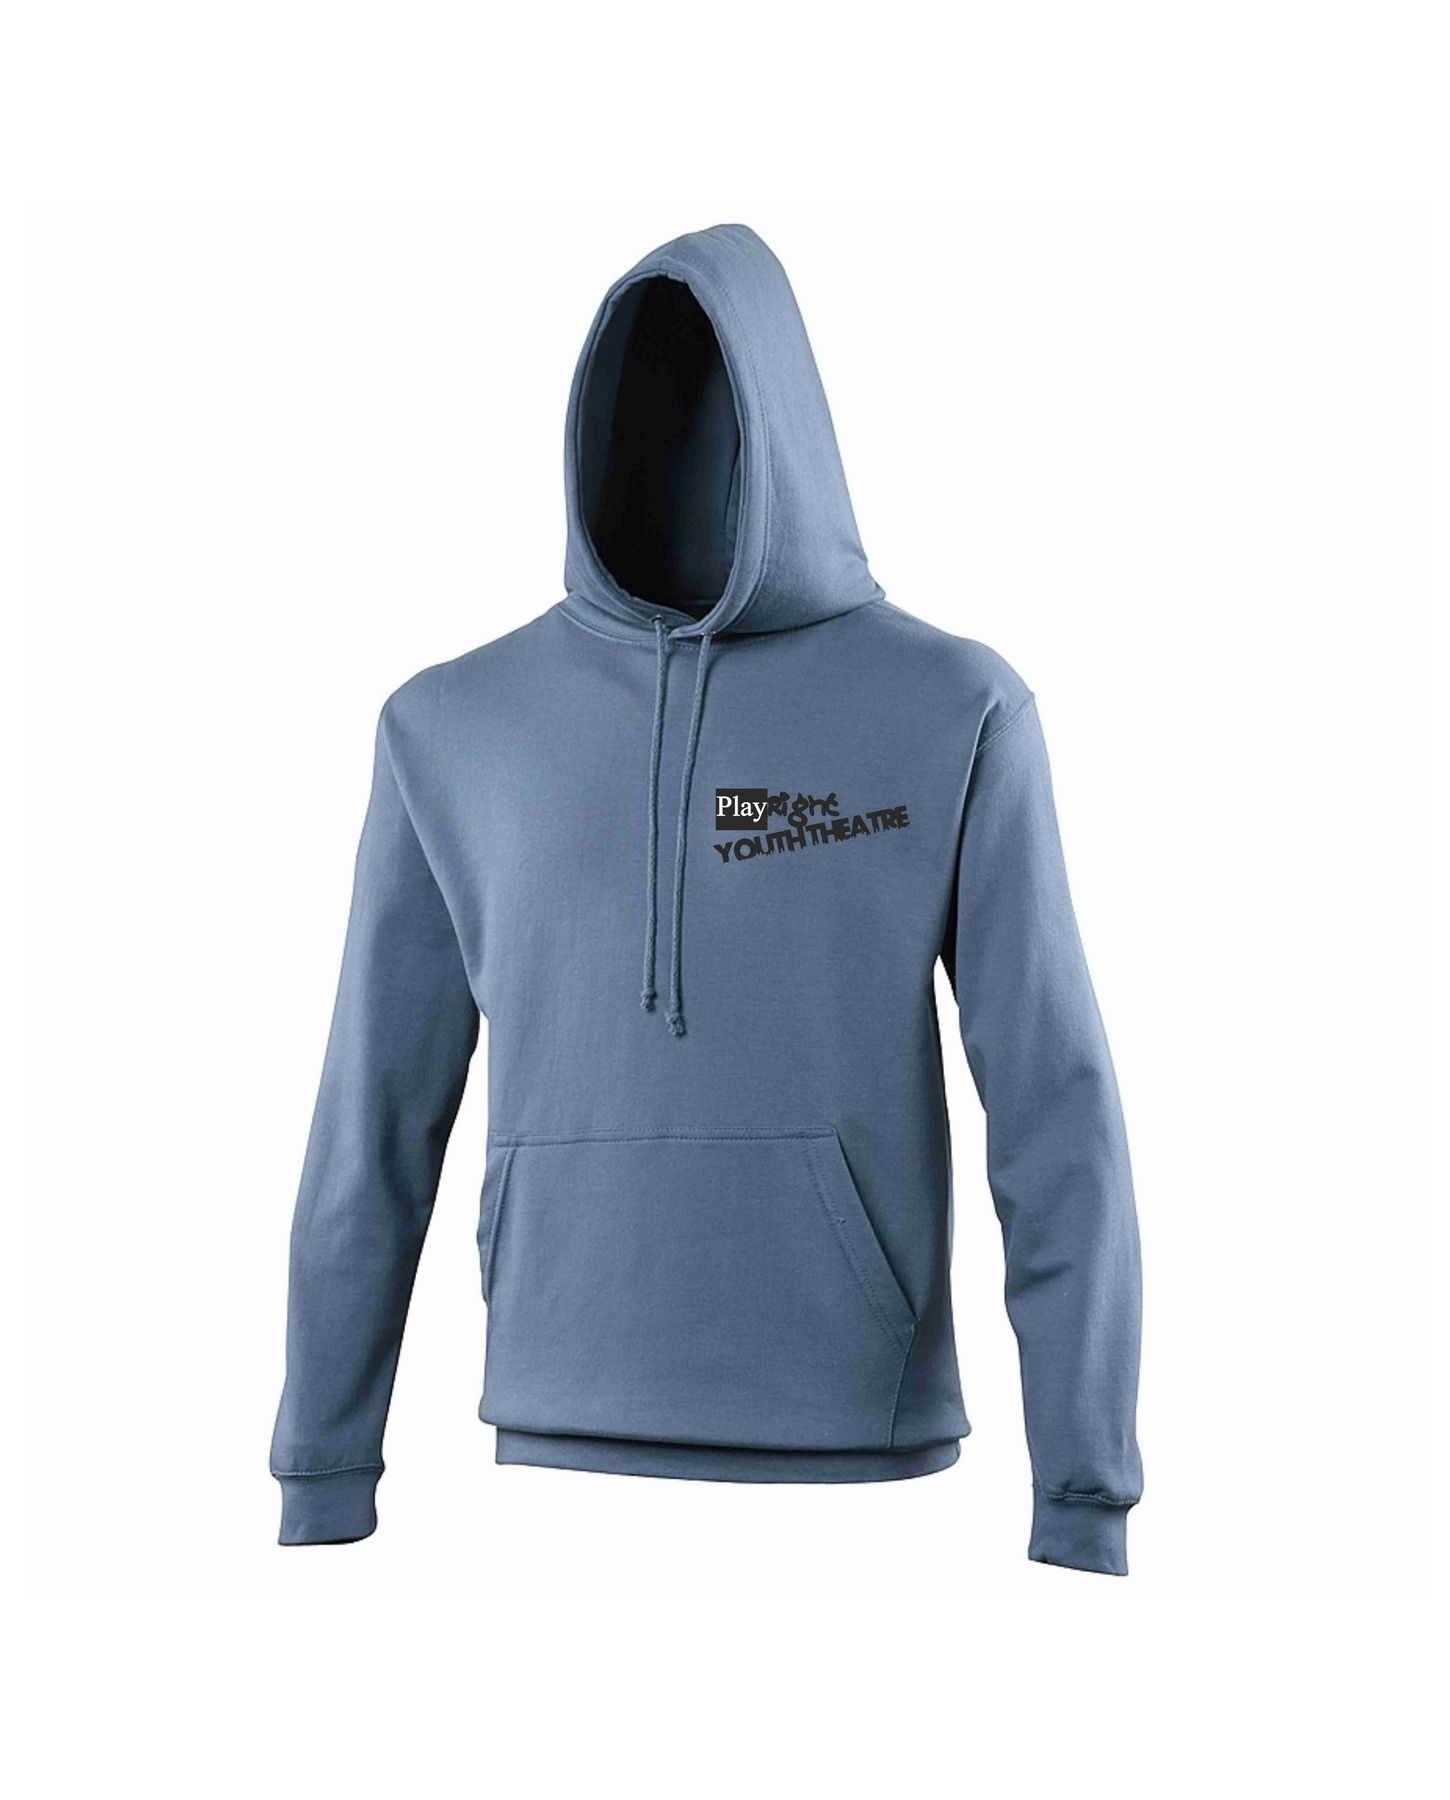 PlayRight Youth Theatre – Hoodie (Unisex)